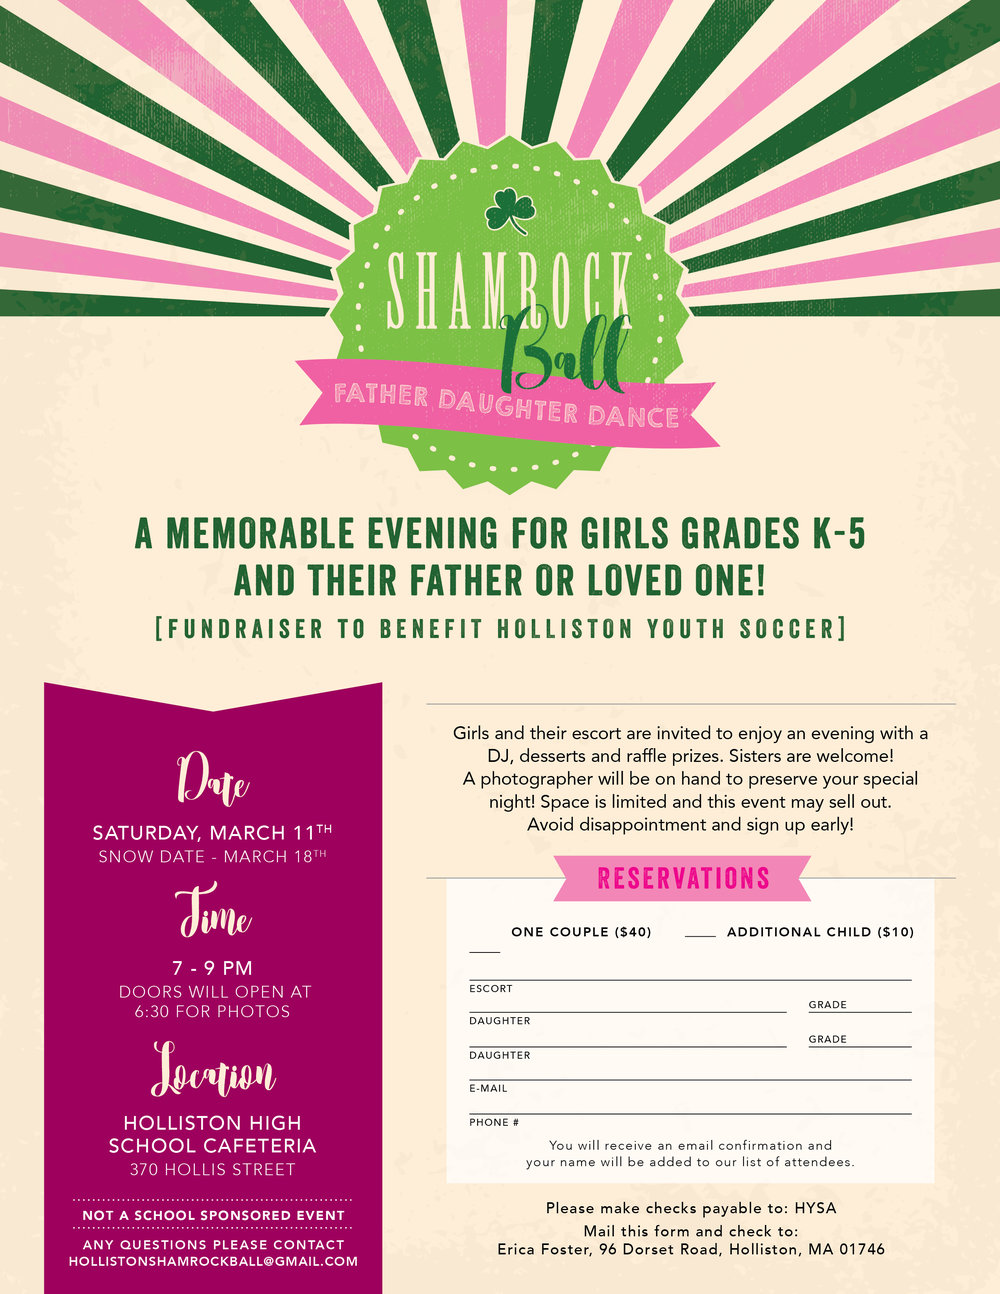 Flyer size event invitation - perfect size for elementary school age kids to bring home to their parents!